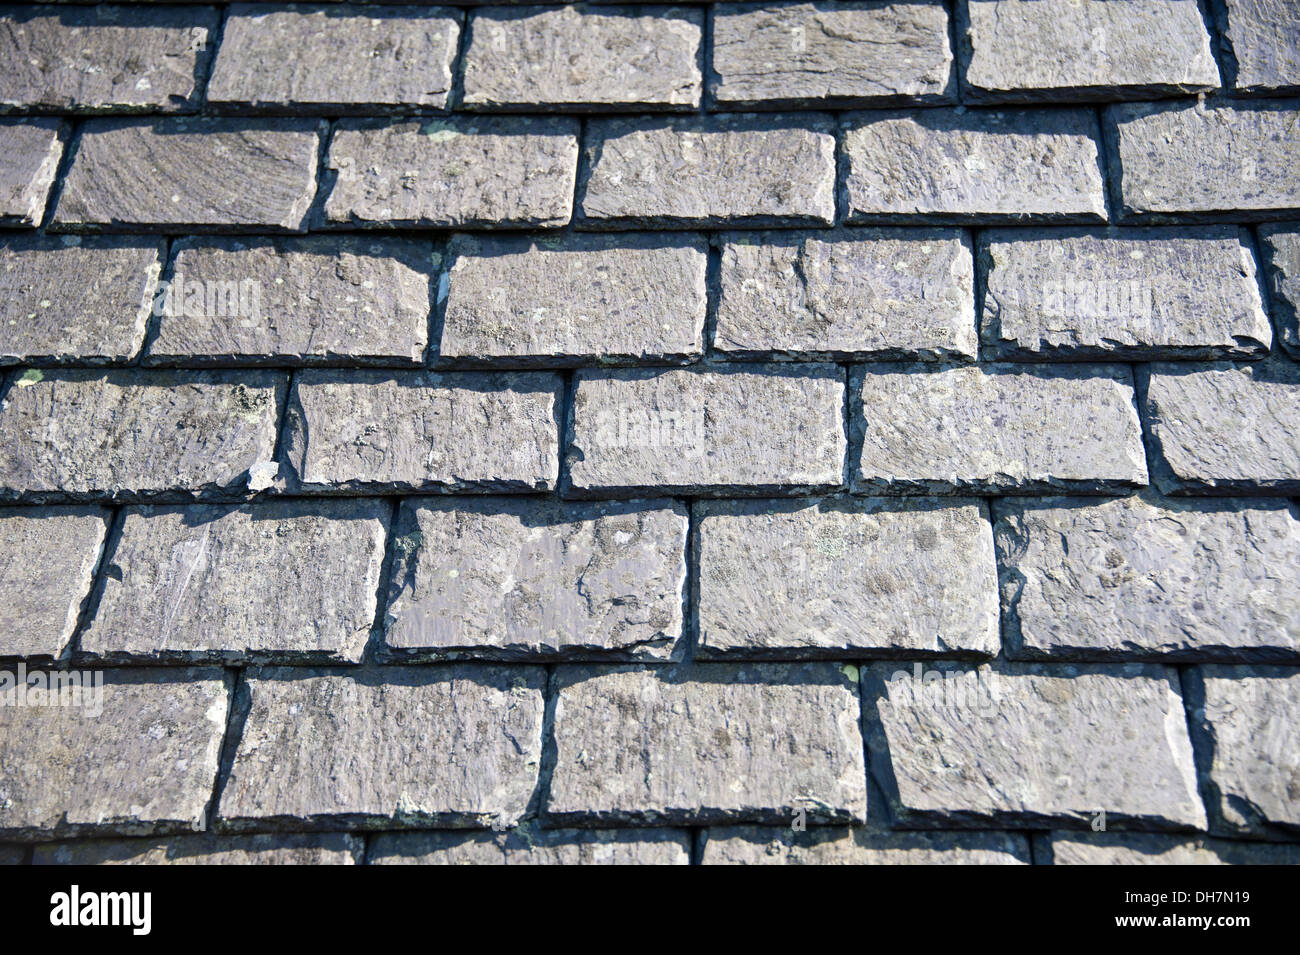 traditional welsh slate roof slates quality thick wales stock photo 62250421 alamy. Black Bedroom Furniture Sets. Home Design Ideas